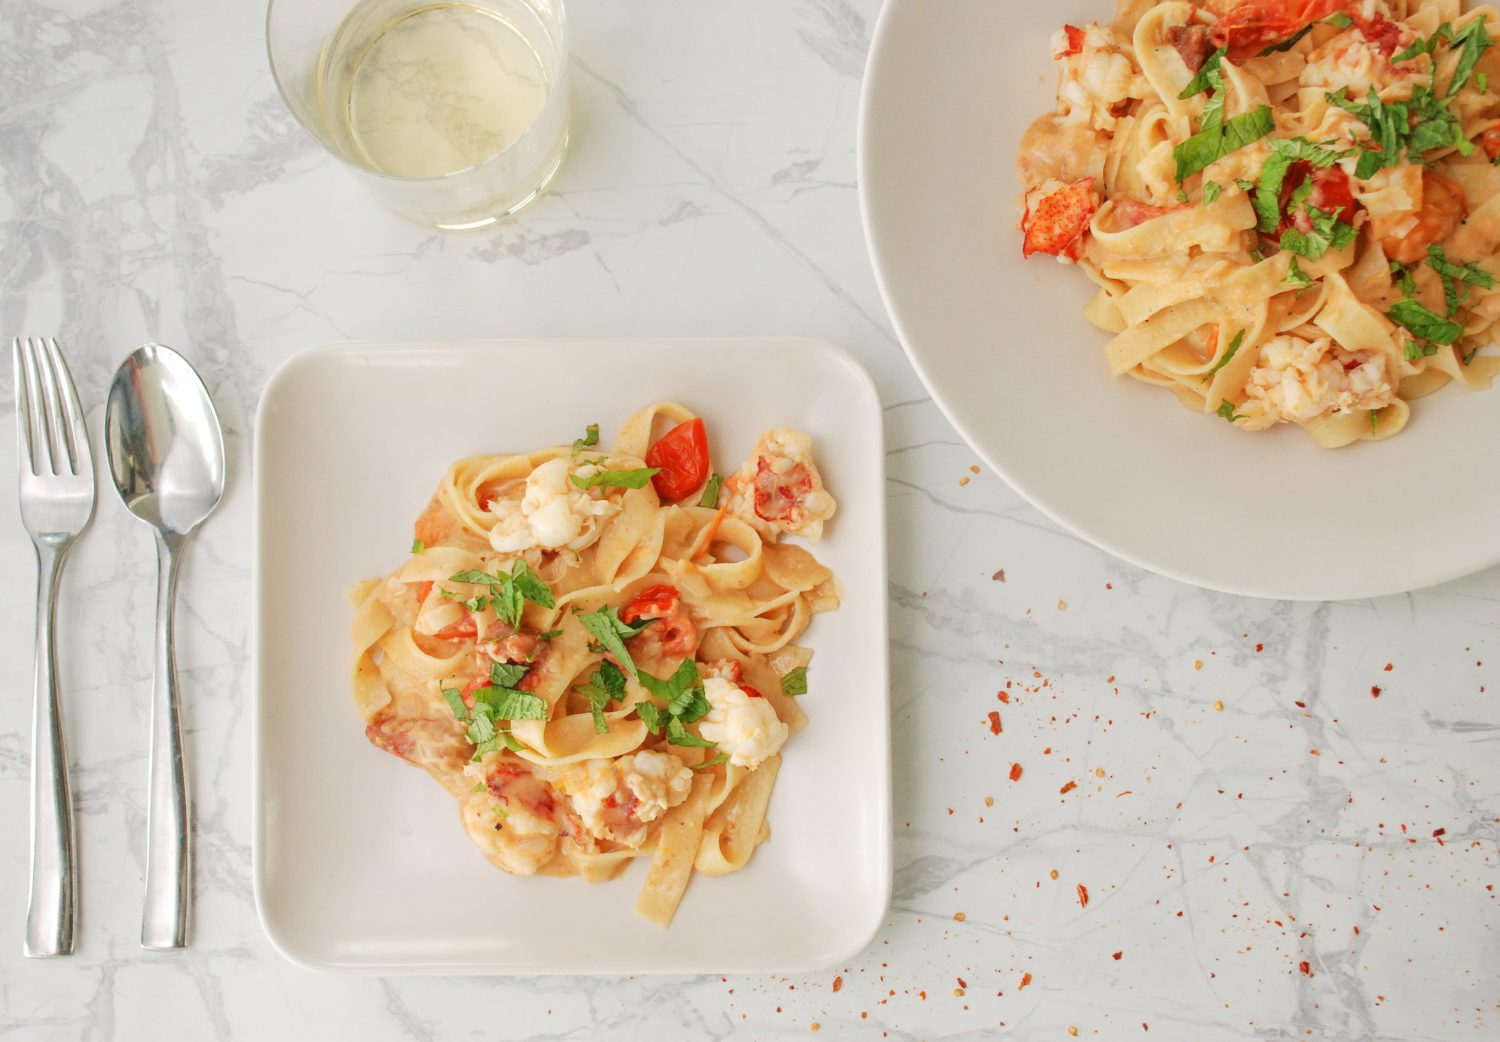 Lemony Lobster Pasta with Burst Cherry Tomatoes & Mint